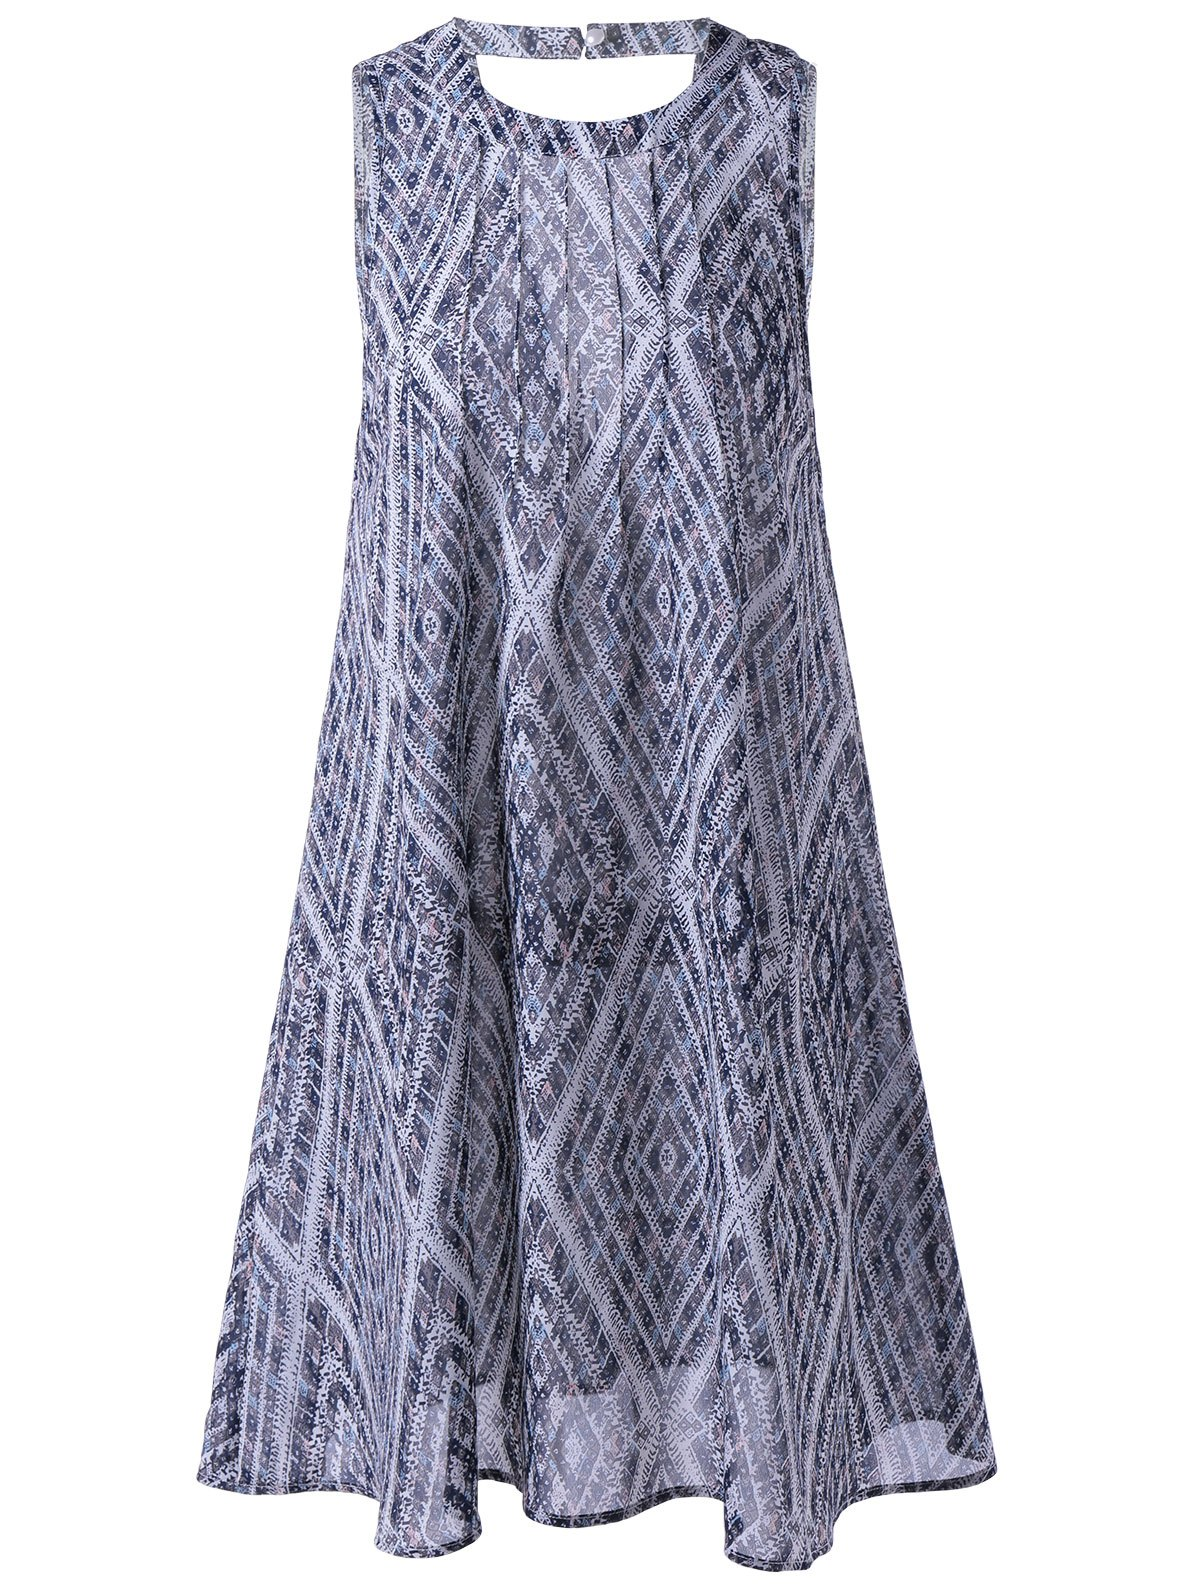 Ethnic Style Women's Loose-Fitting Round Neck Cavern Out Dress - PURPLISH BLUE L